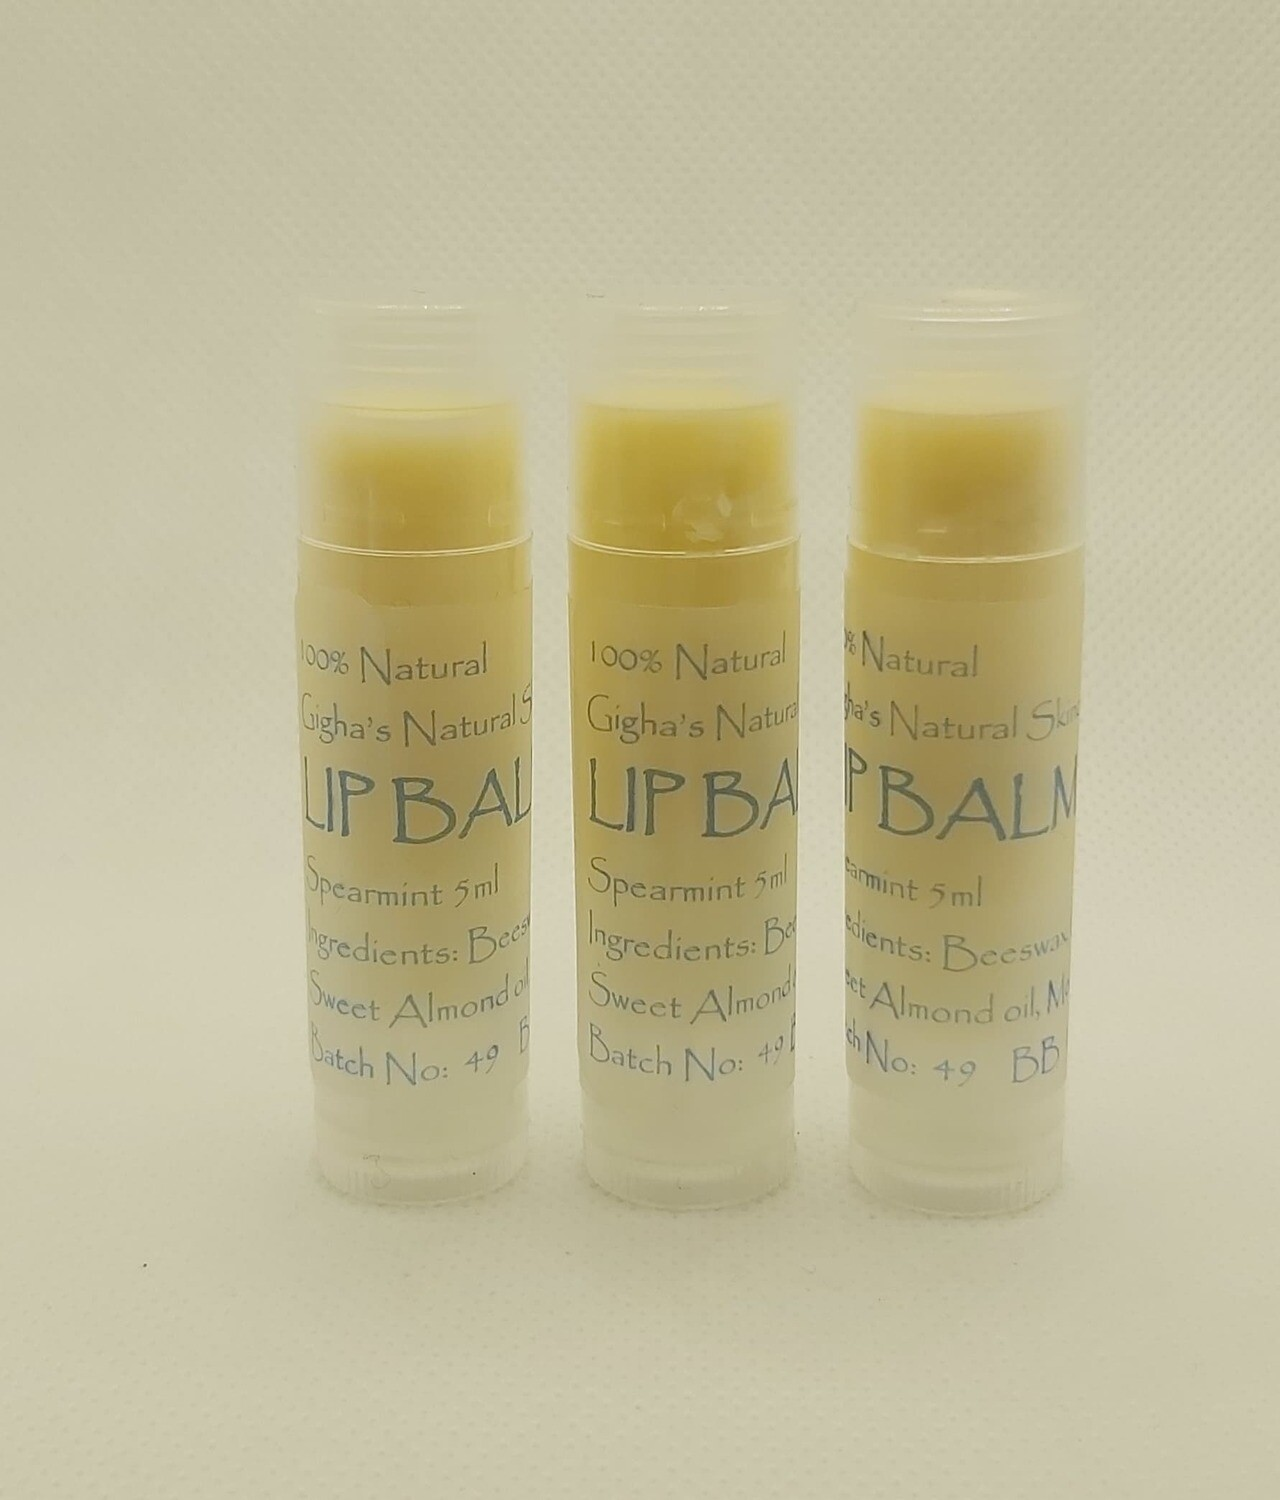 5ml Lip Balm tube 'Spearmint'